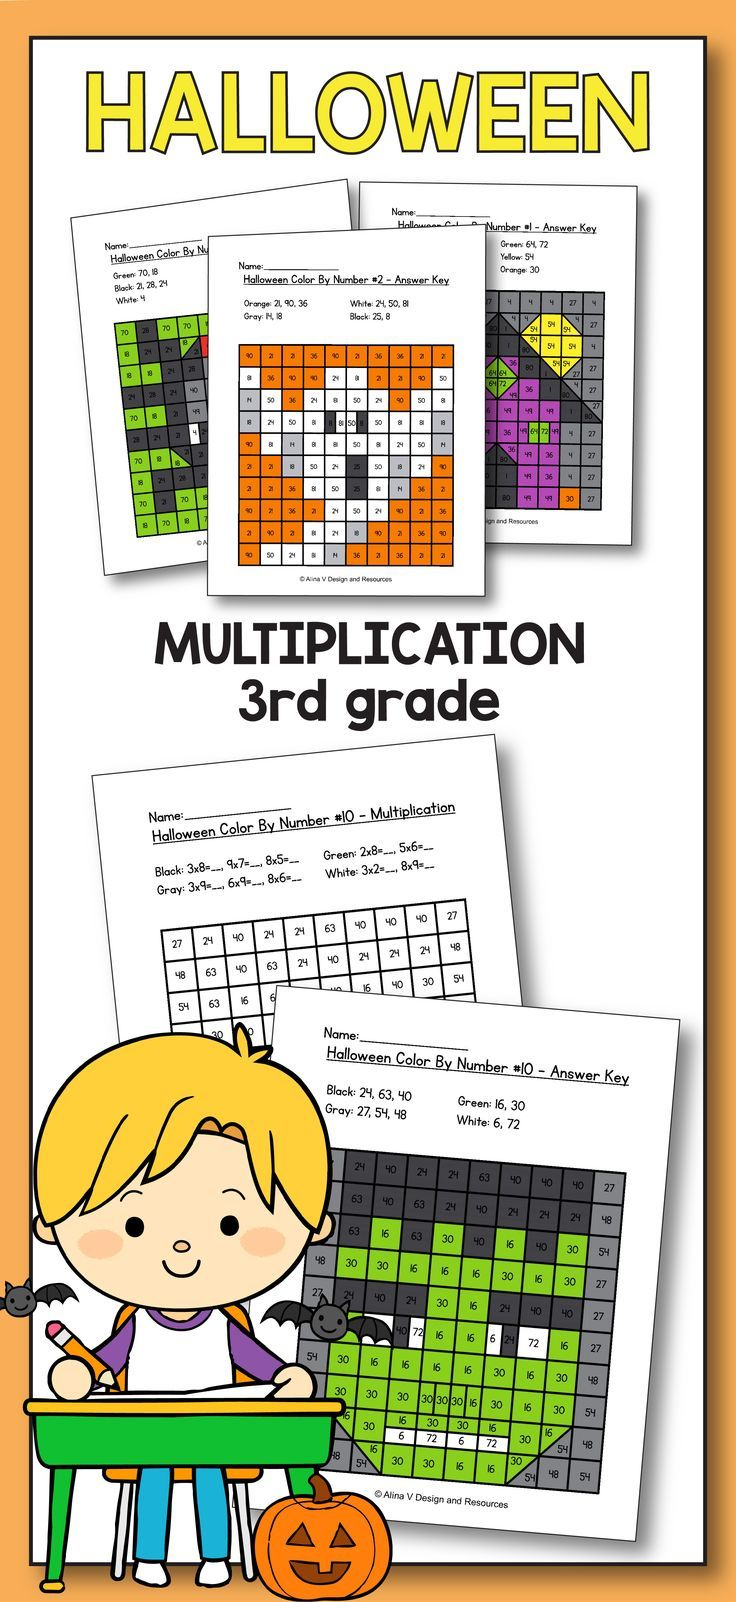 medium resolution of Halloween Multiplication Math Worksheets for 3rd grade kids is fun with  these hundreds c…   Halloween math activities